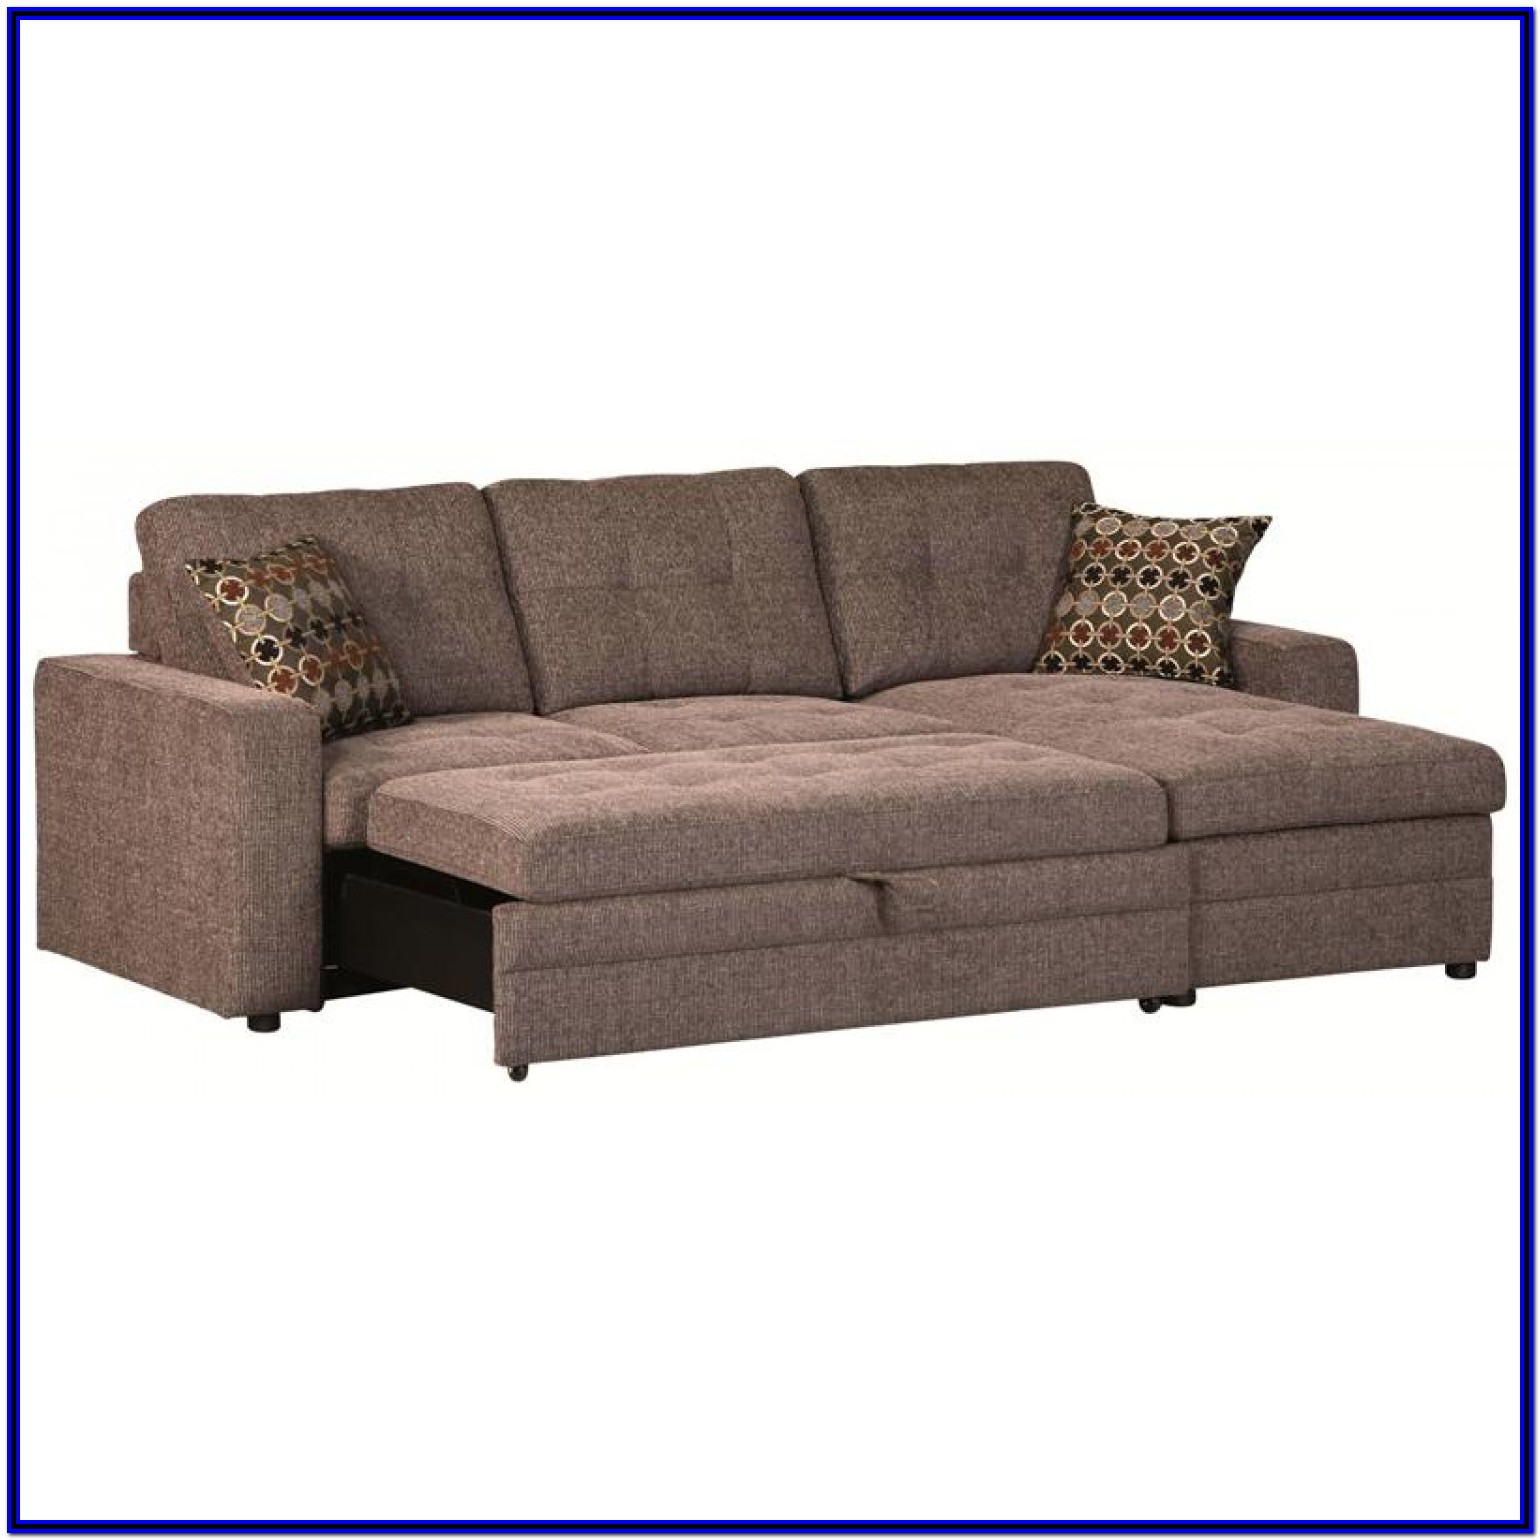 Sectional Couch Recliner Pull Out Bed